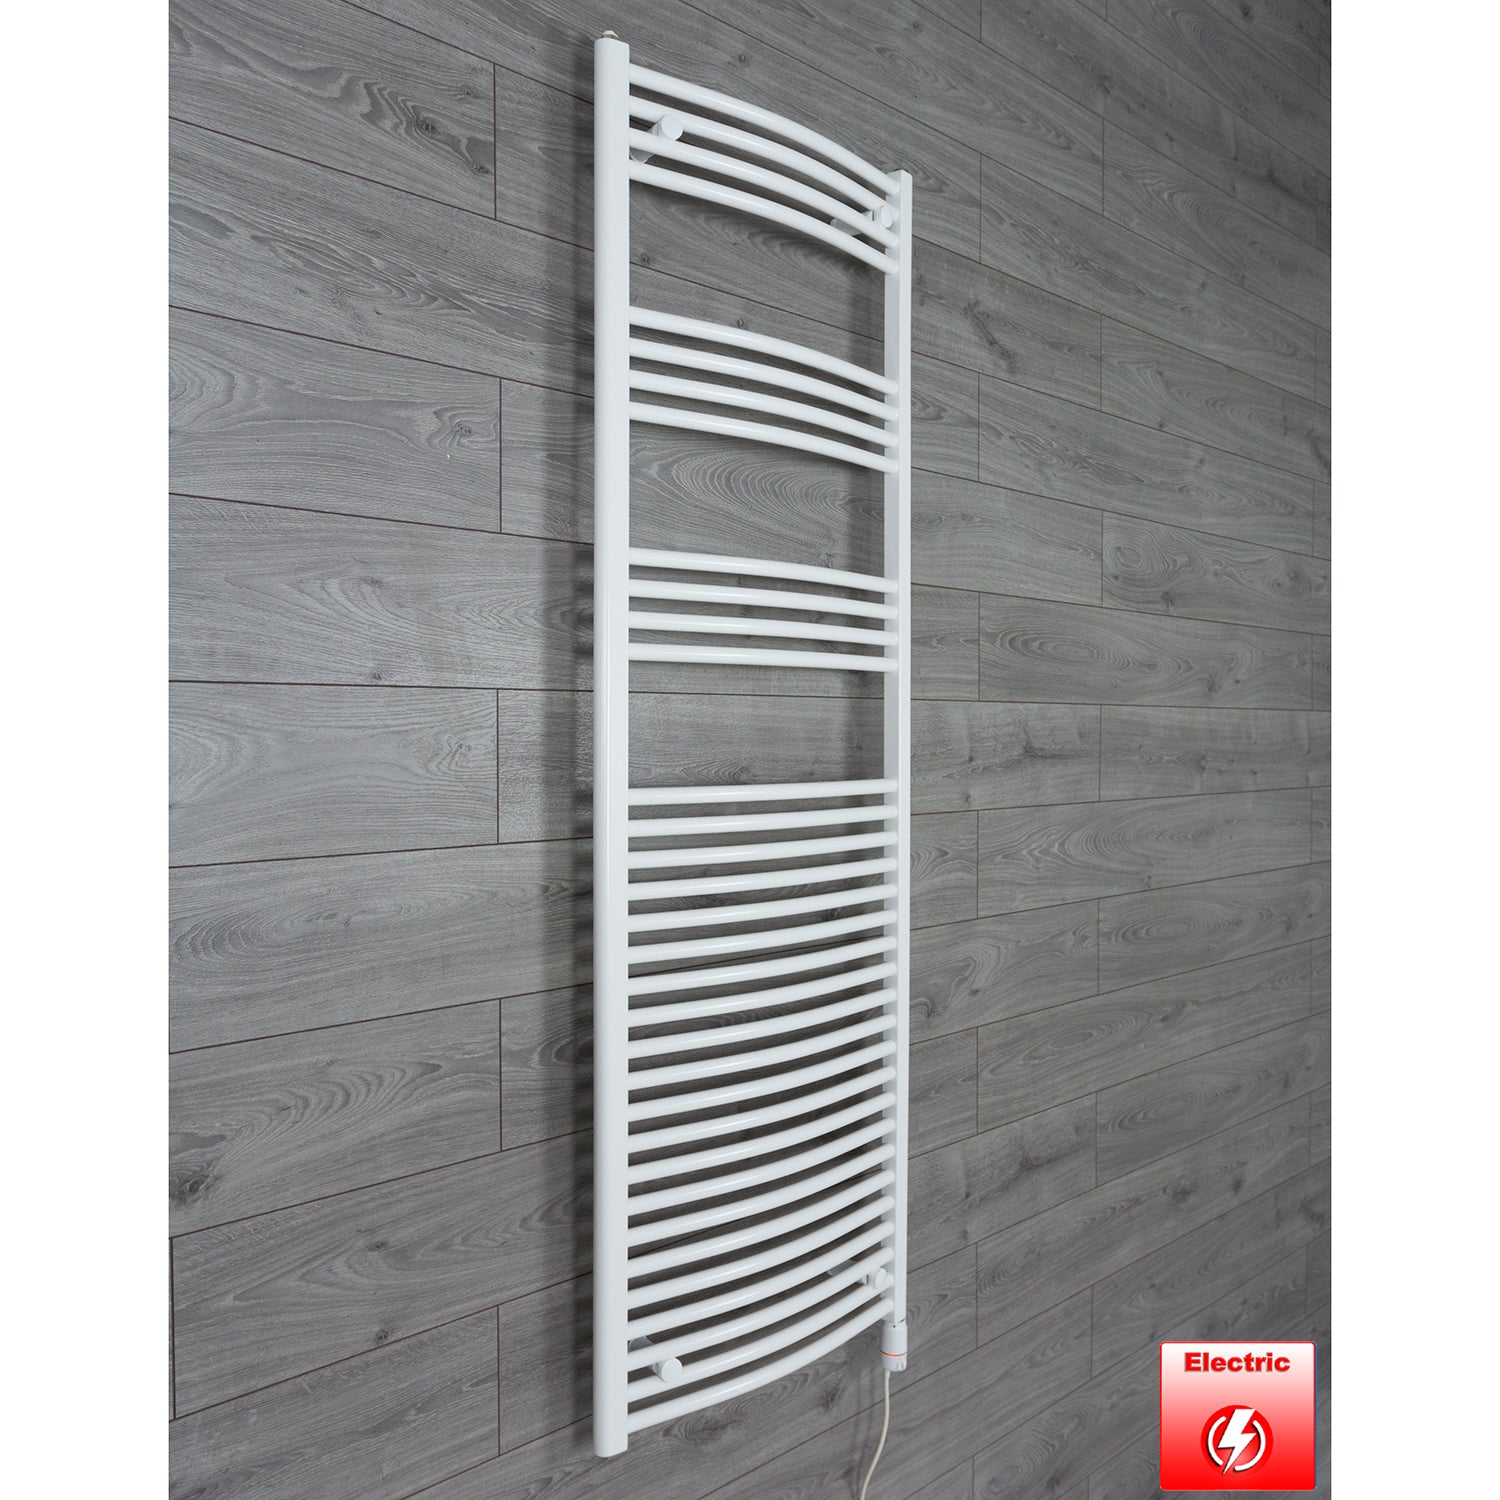 1800 mm High 600 mm Wide Heated Curved Towel Rail Radiator White prefilled thermostatic  Electric